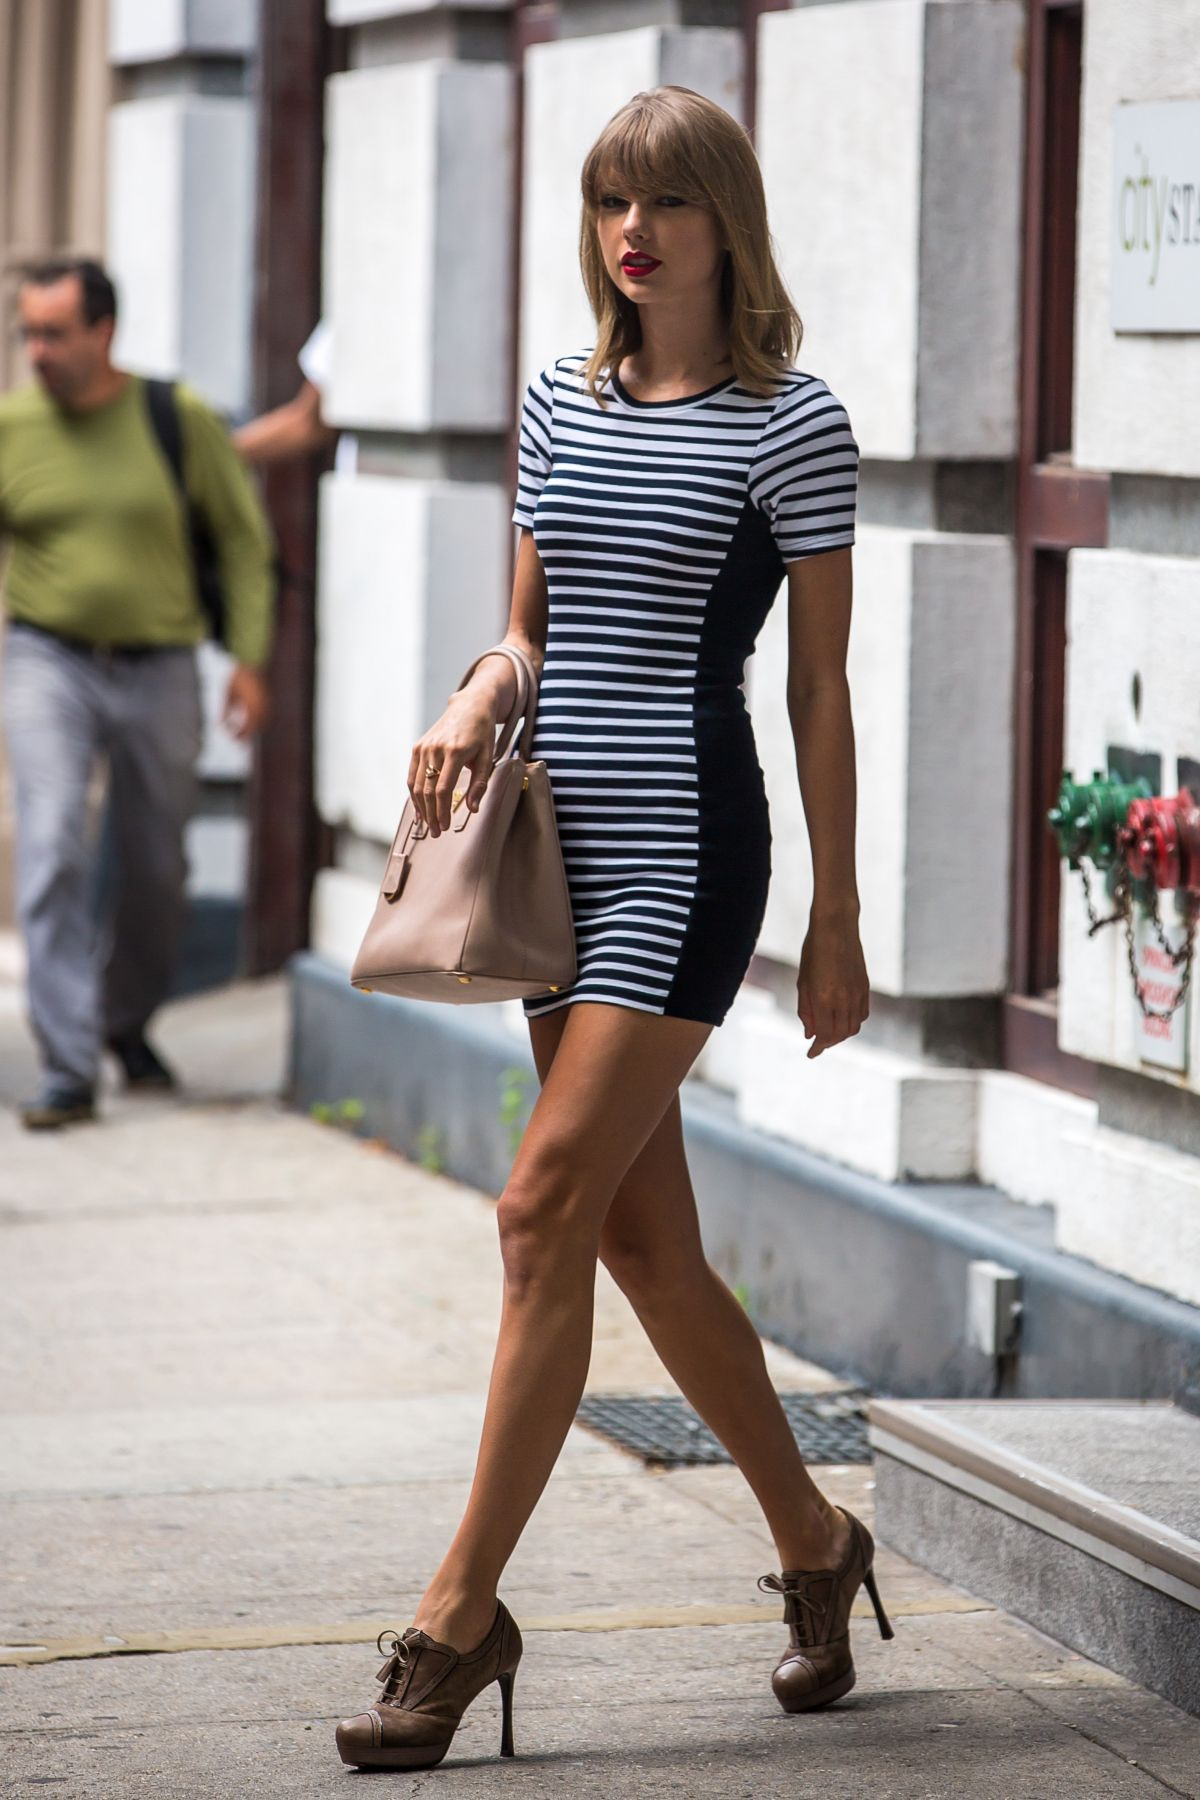 TAYLOR SWIFT in Tight Dress Out in New York – HawtCelebs